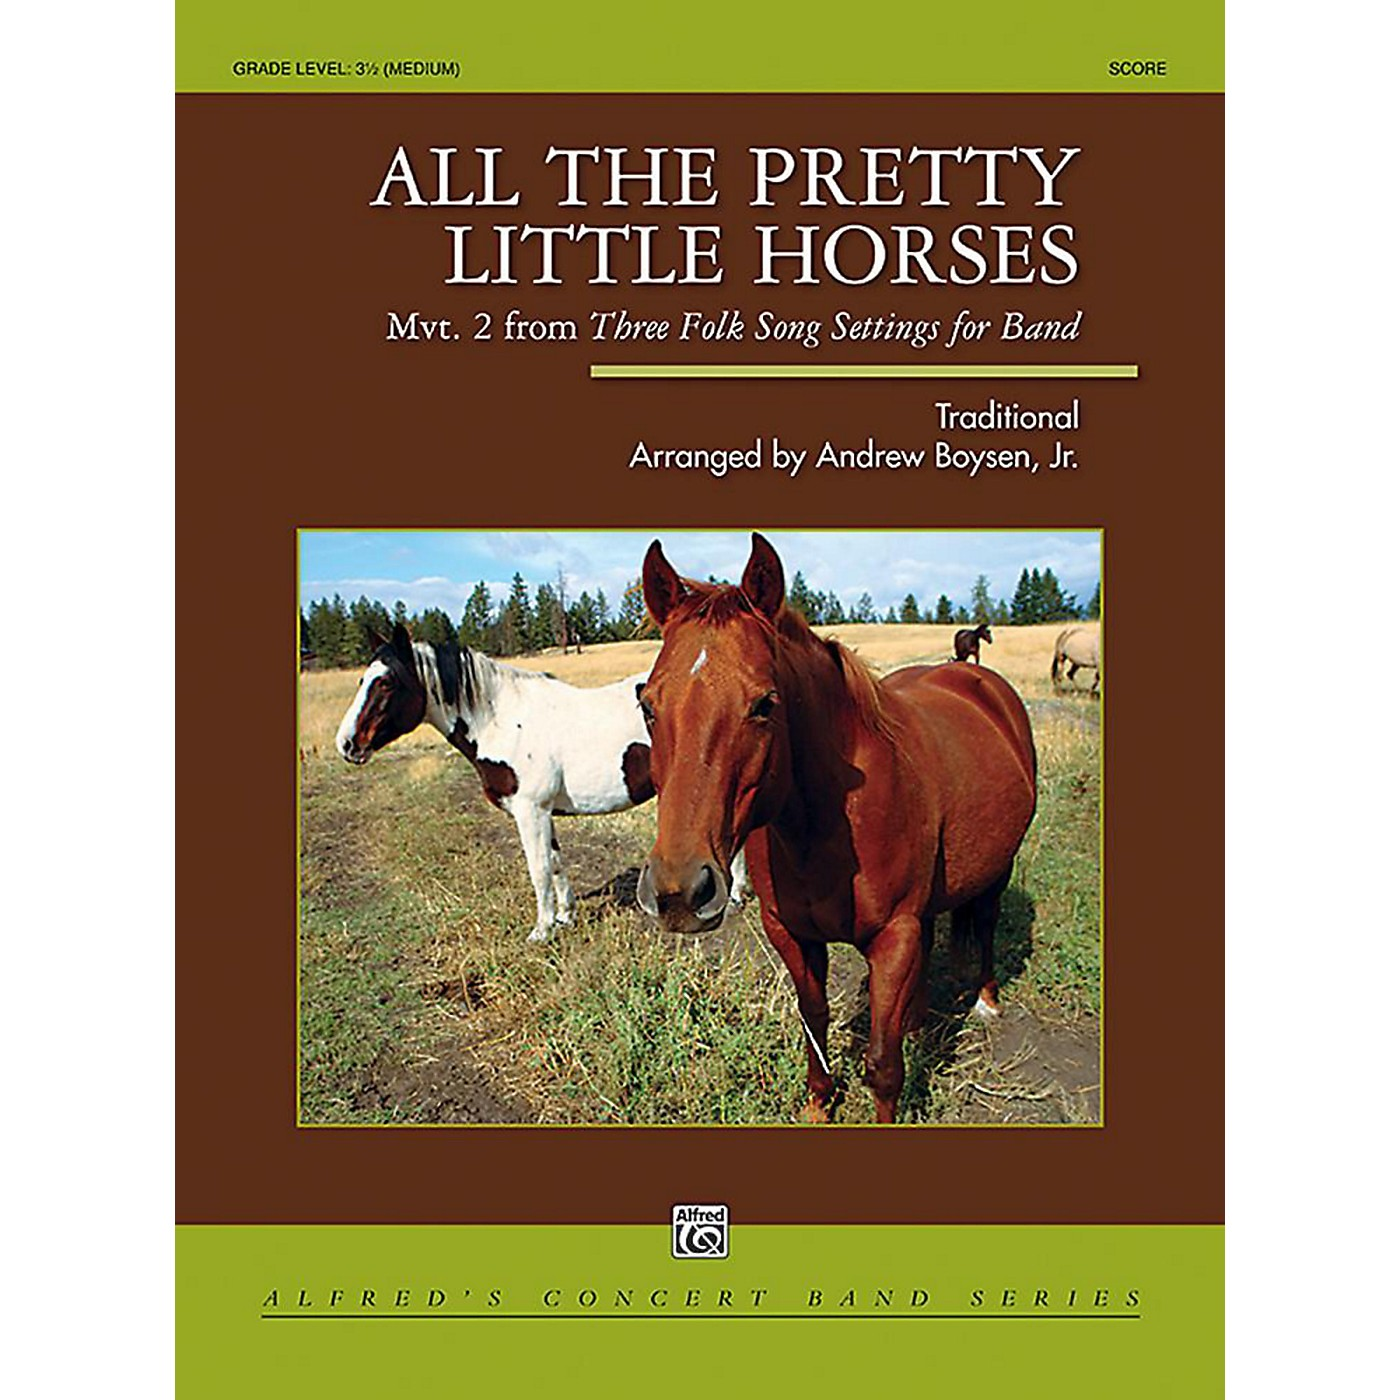 Alfred All the Pretty Little Horses Concert Band Grade 3.5 Set thumbnail